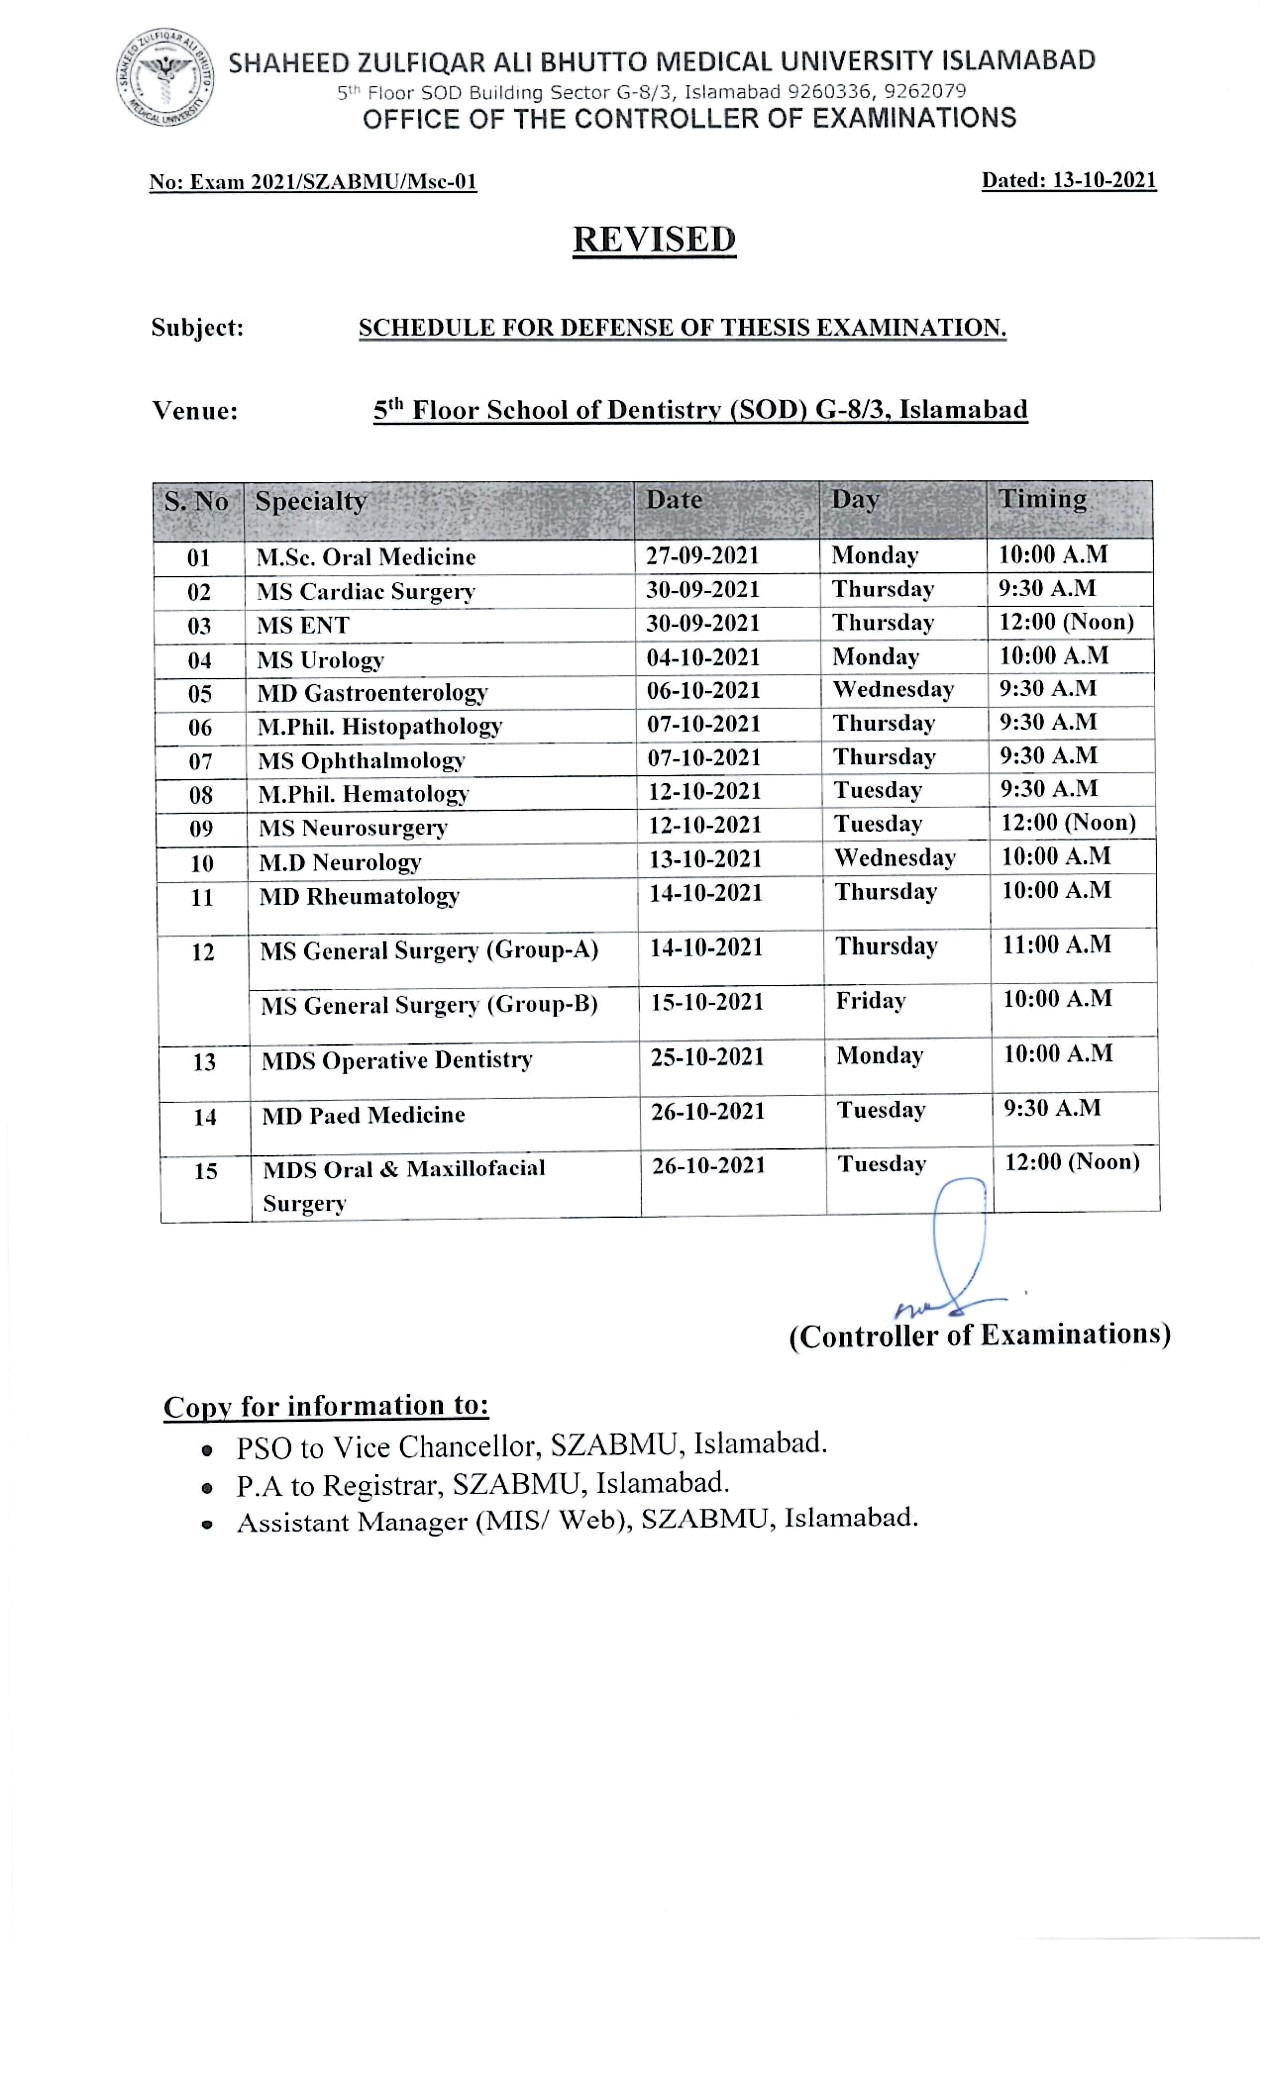 Revised - Schedule for defense of Thesis Examination